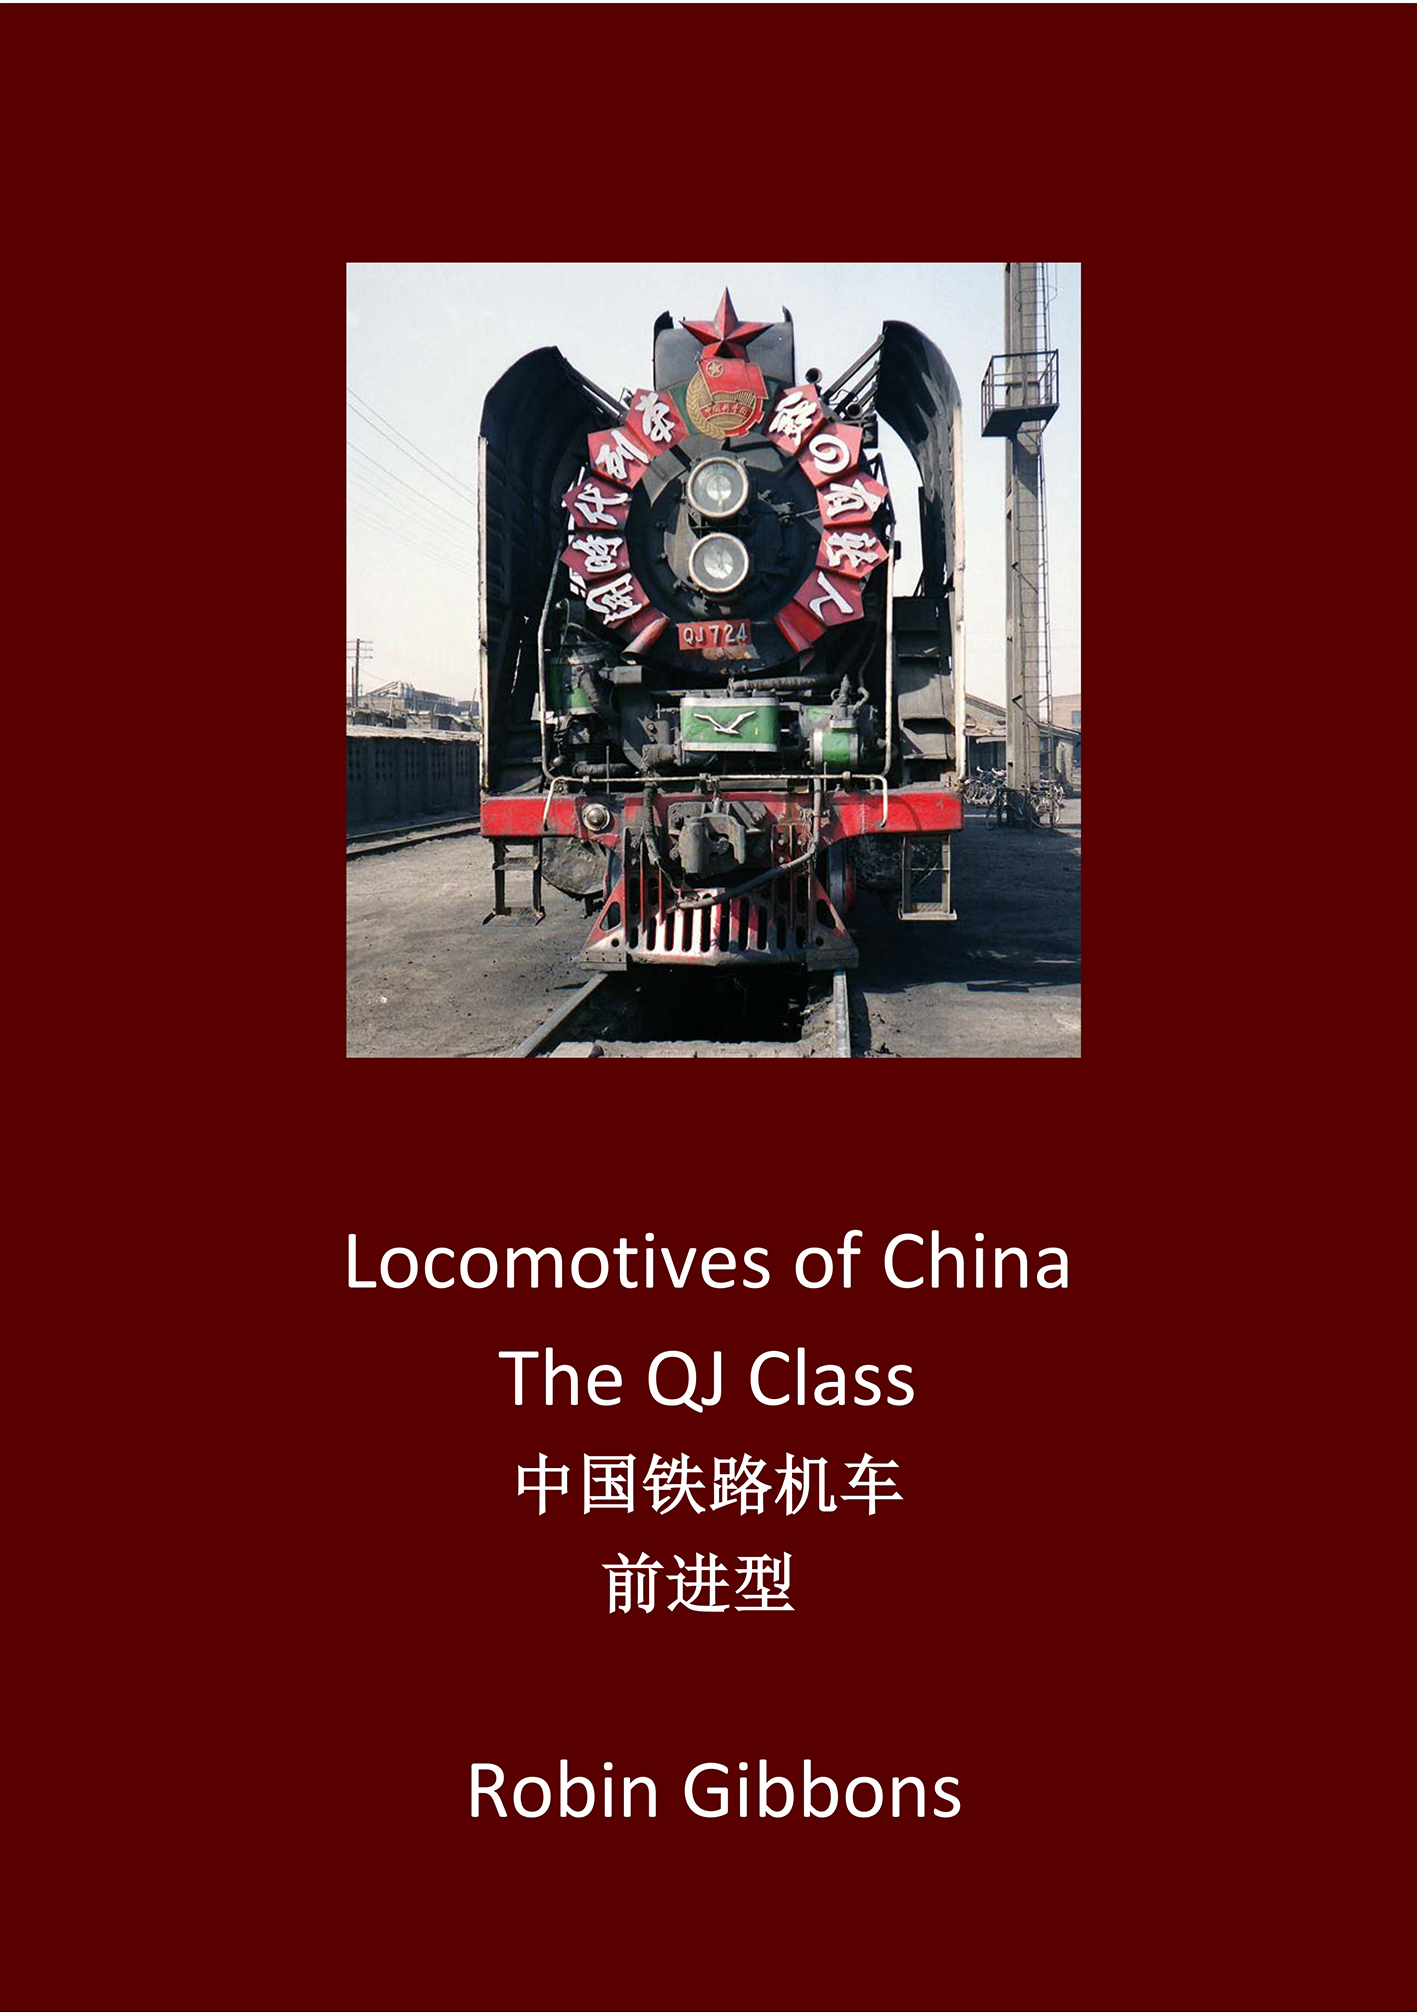 qj_book_cover_12cm.jpg